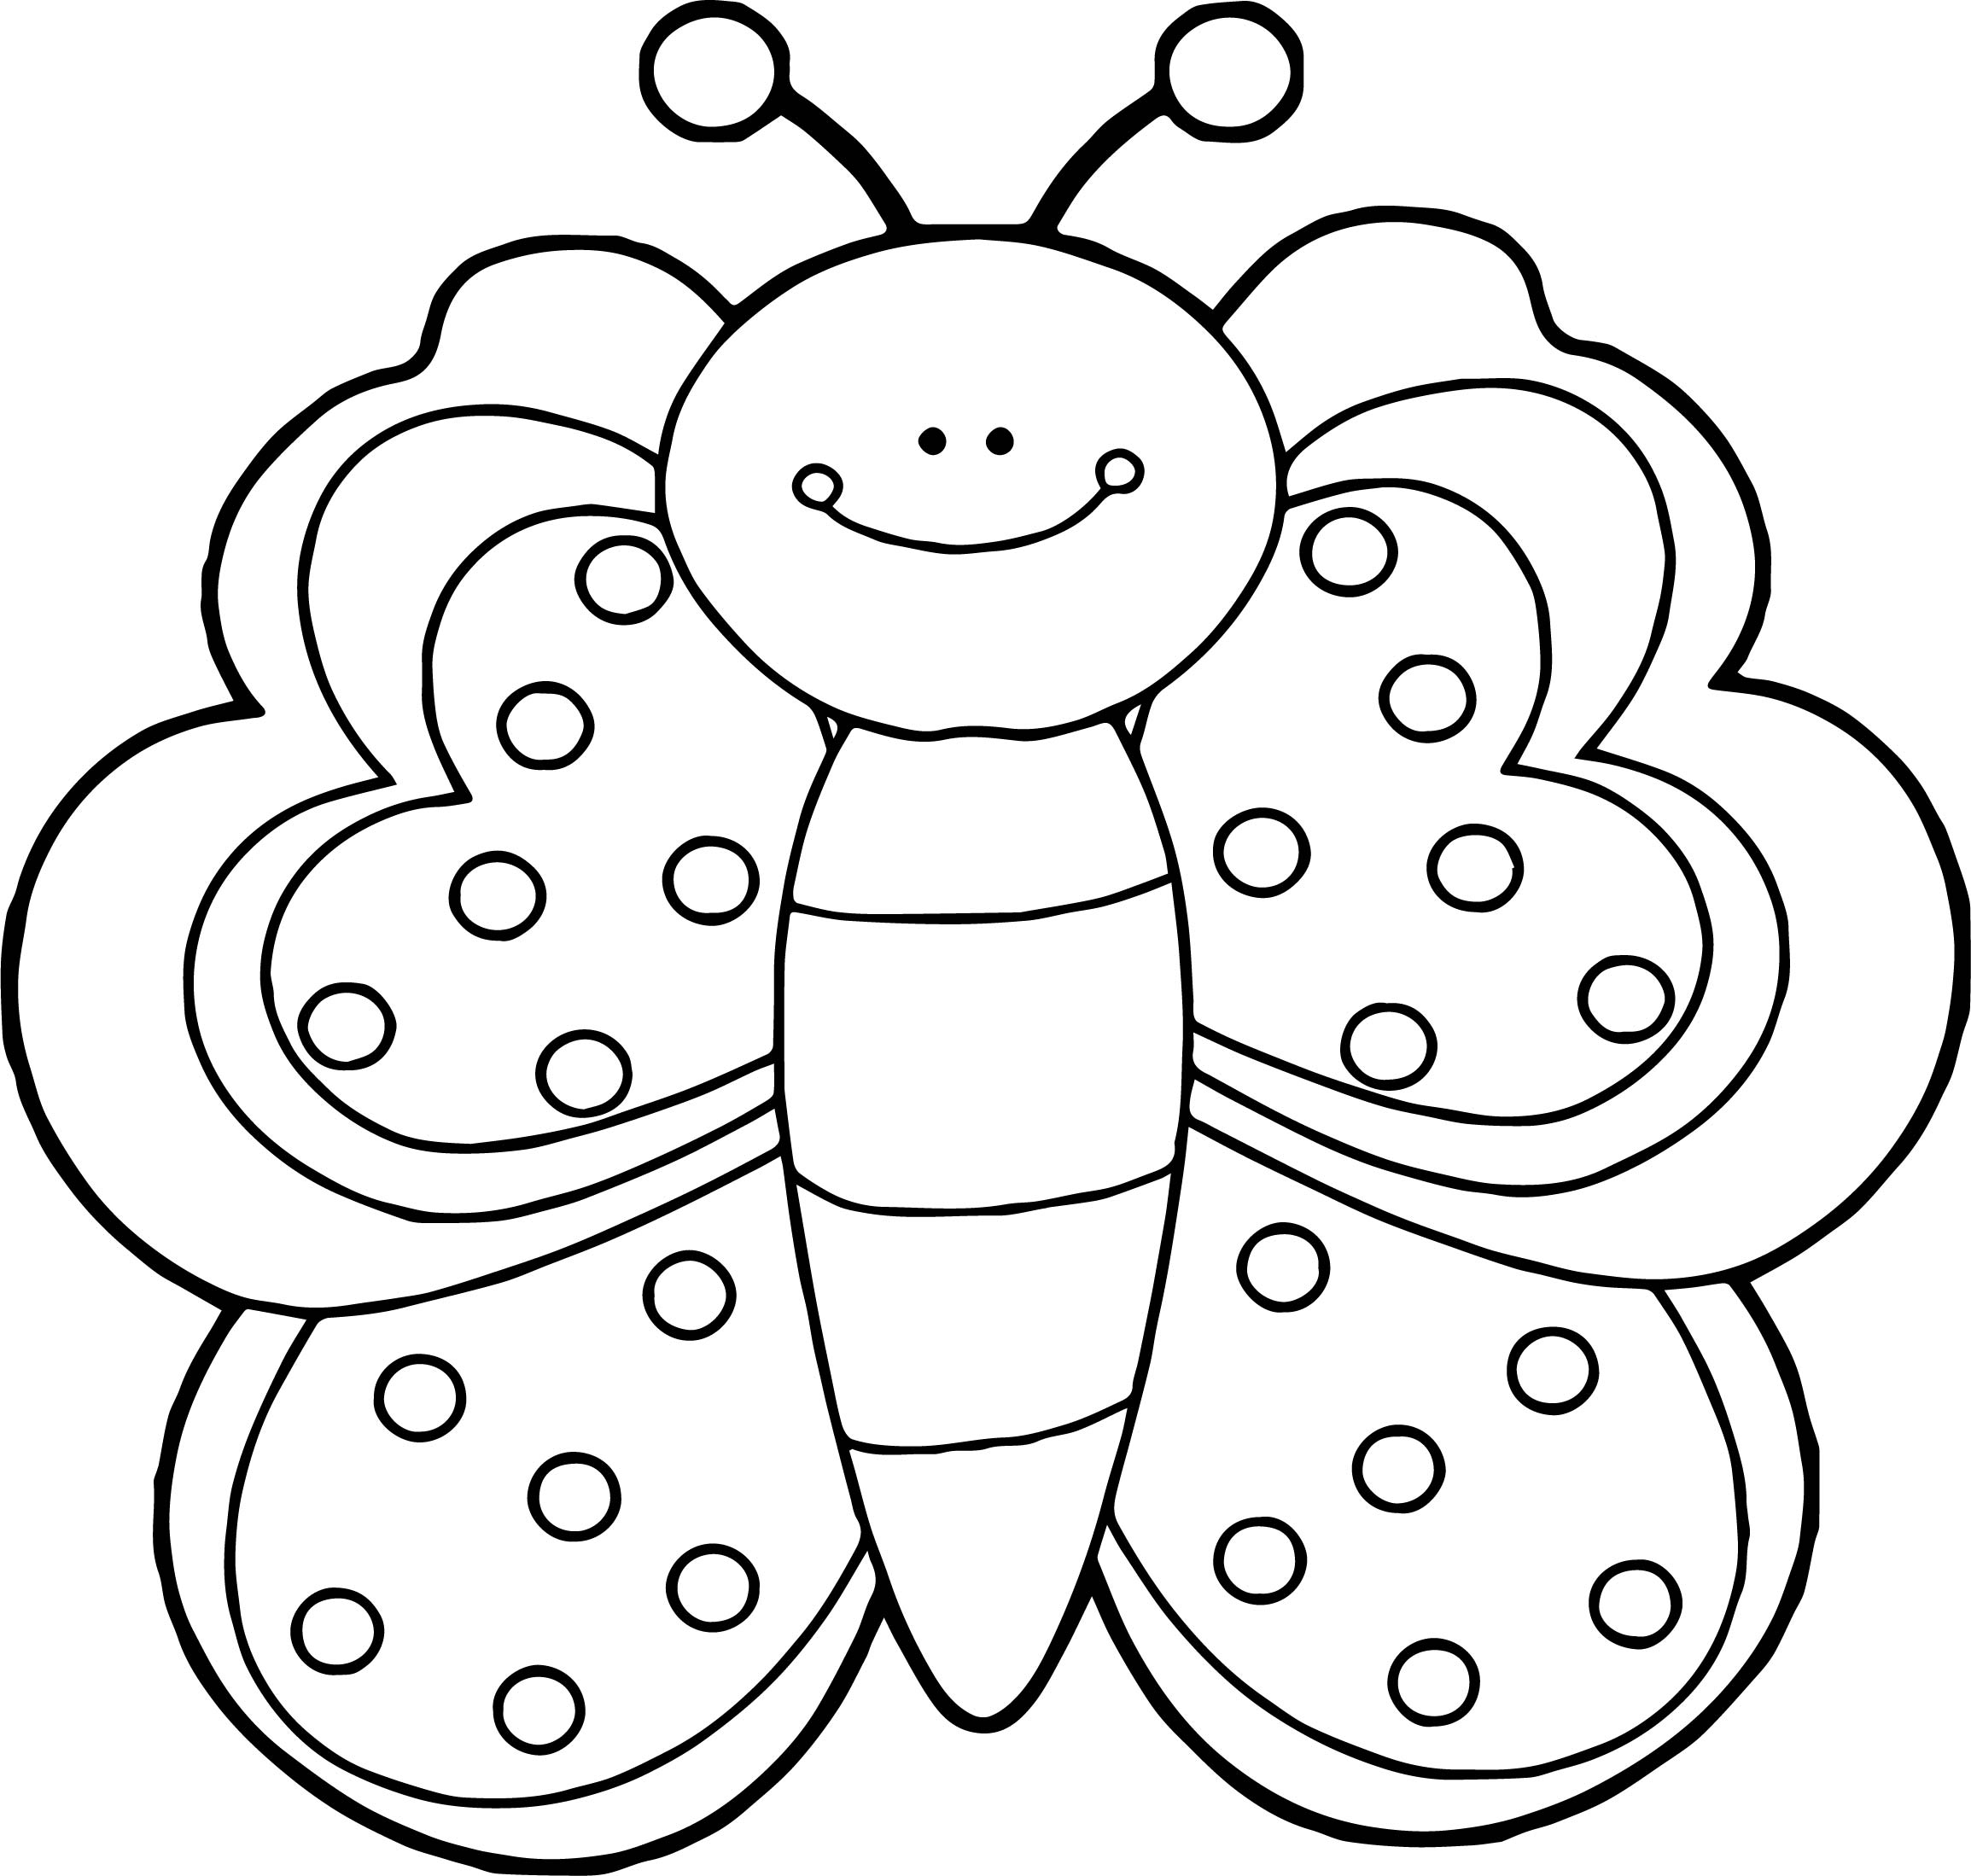 baby butterfly coloring pages cute baby puppies and butterfly coloring page free baby butterfly coloring pages